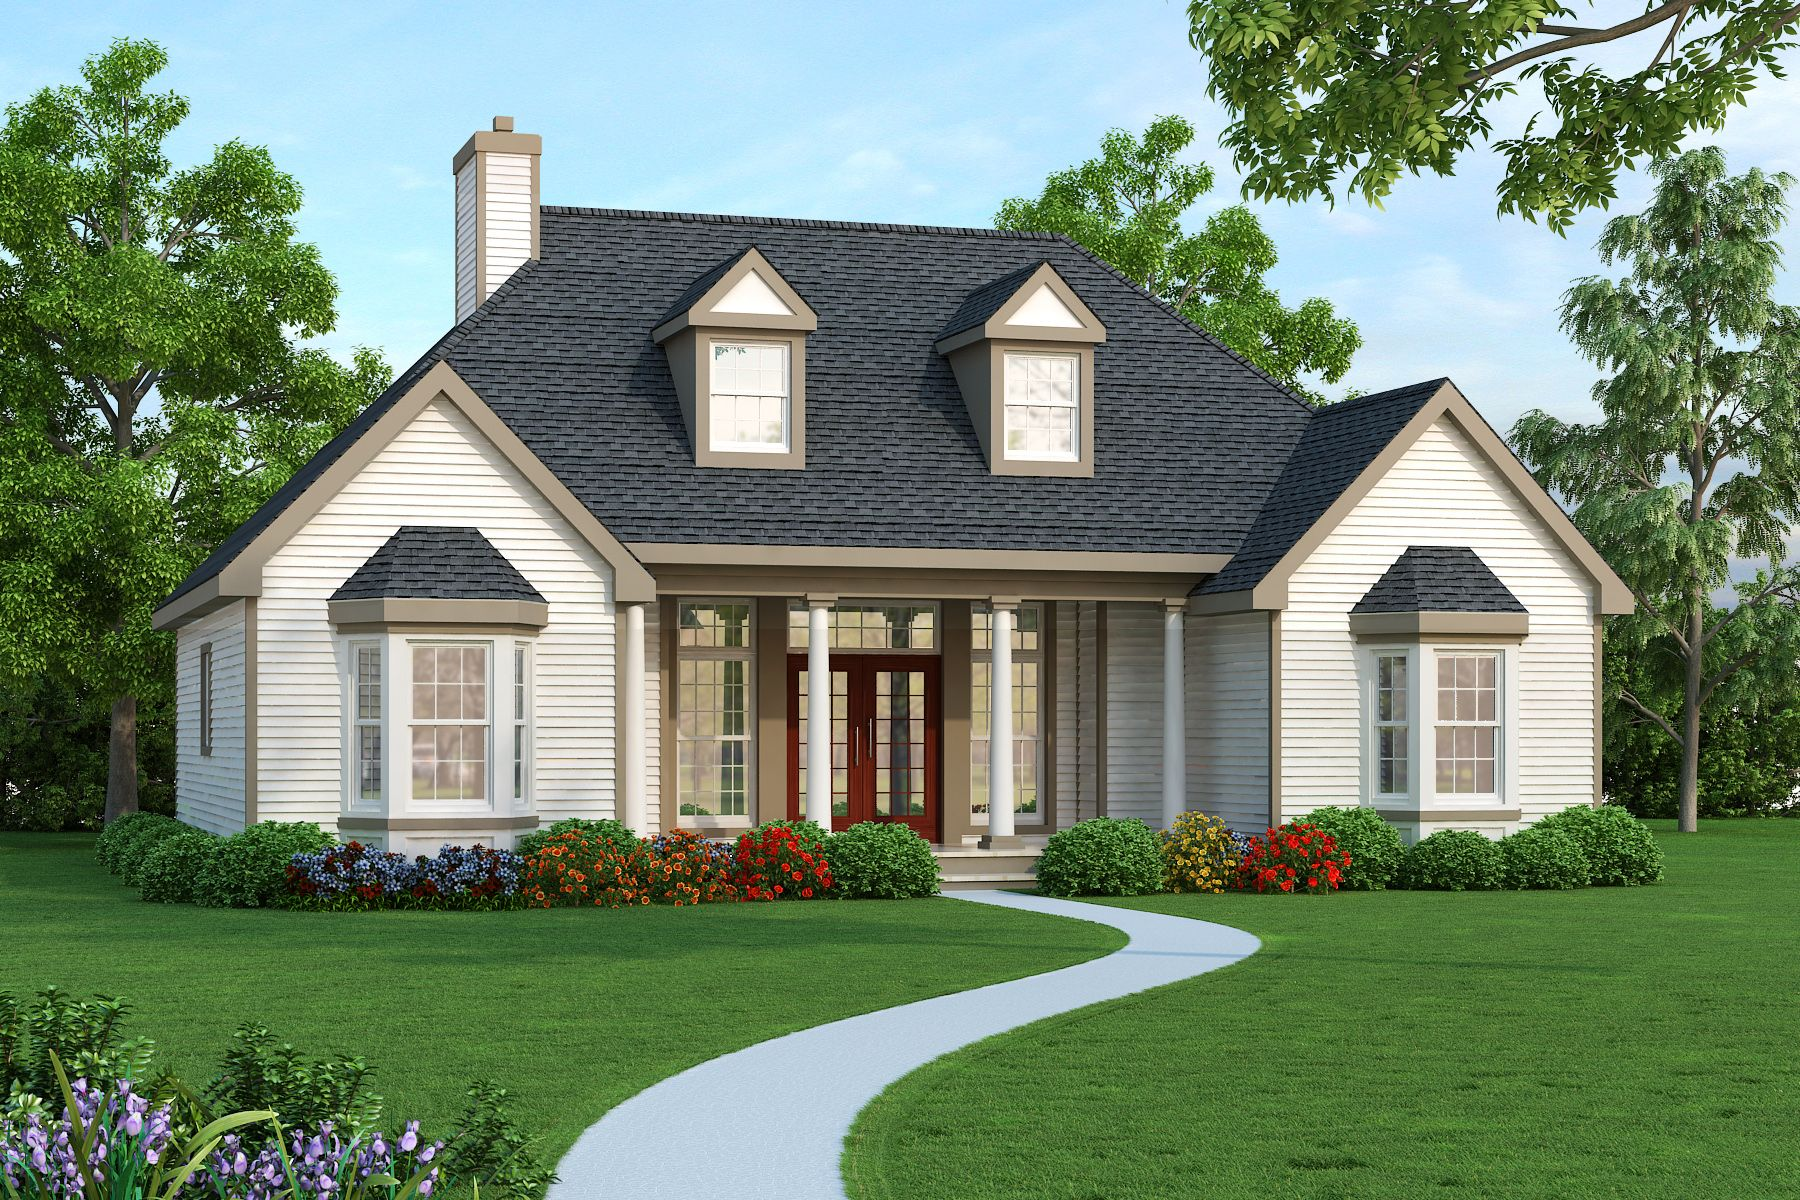 This new ranch house plan offers plenty of living space